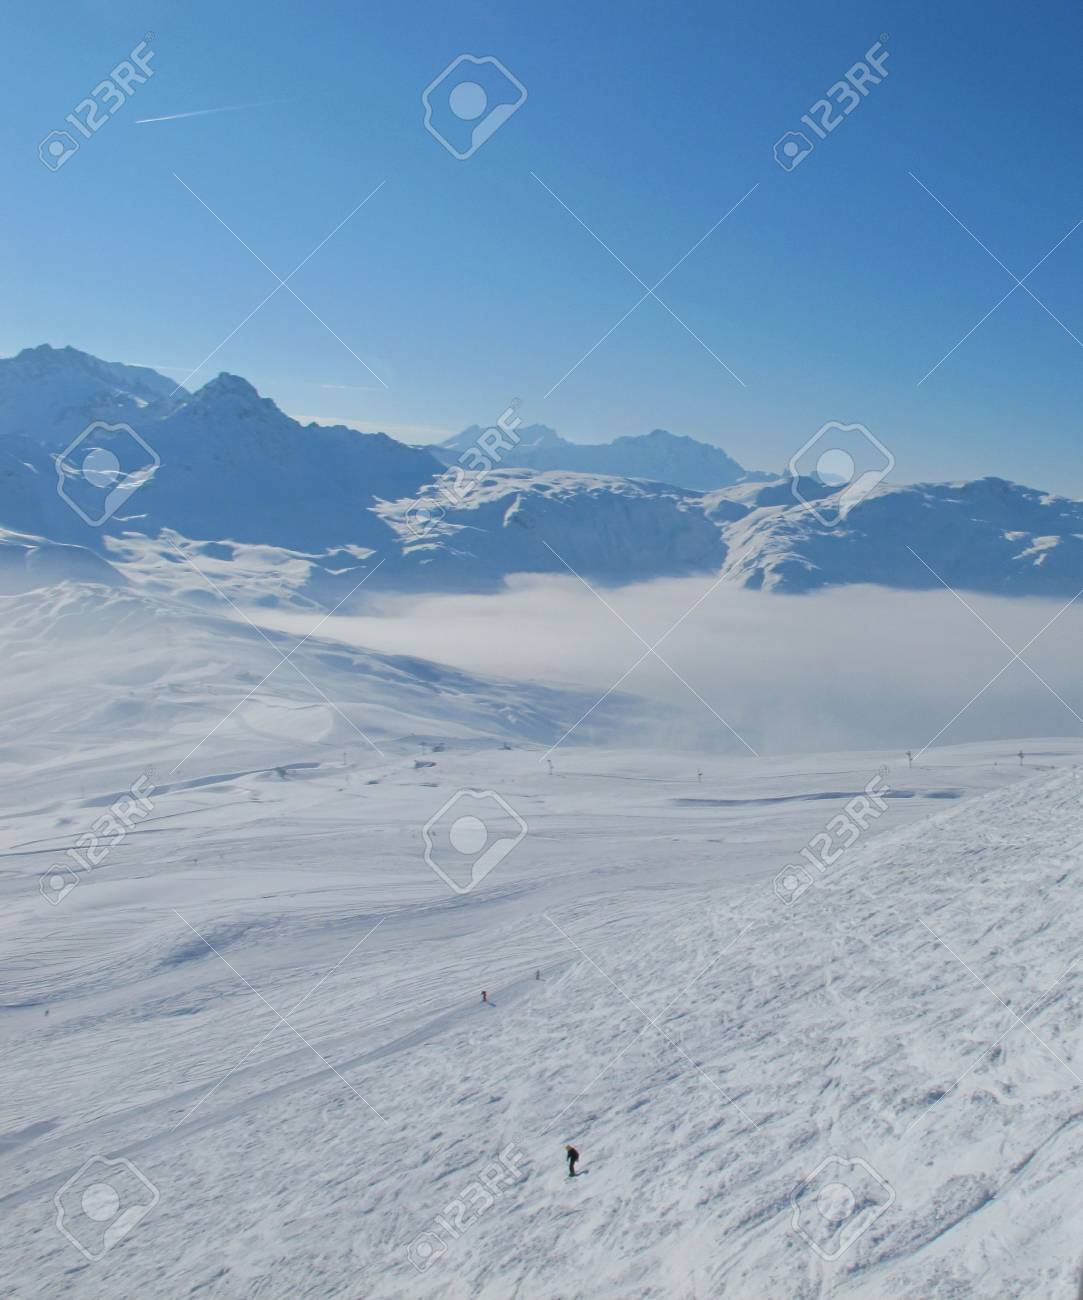 Lone skier. French alp mountains and clouds in valleys. Skiing Les Contamines, French alps Stock Photo - 8031654